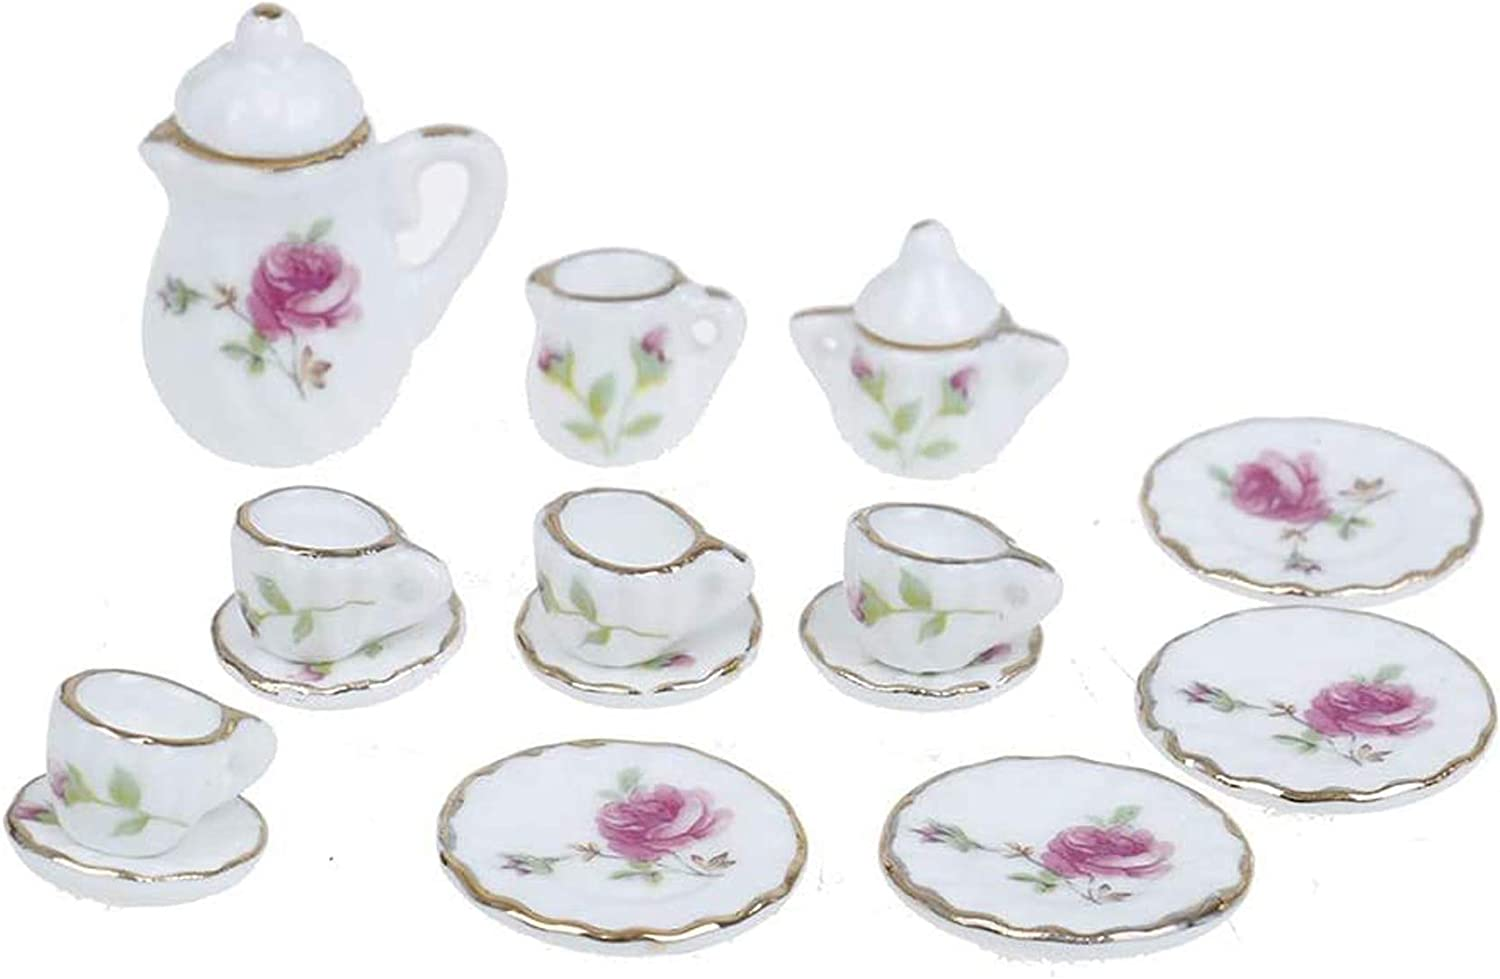 CoscosX 15 Pcs 1:12 Dollhouse Dining Ware Miniature Dish Cup Plate Pink Rose Chintz with Golden Trim Tableware Porcelain Ceramic Coffee Tea Cups Set,Dollhouse Decoration Kitchen Accessories